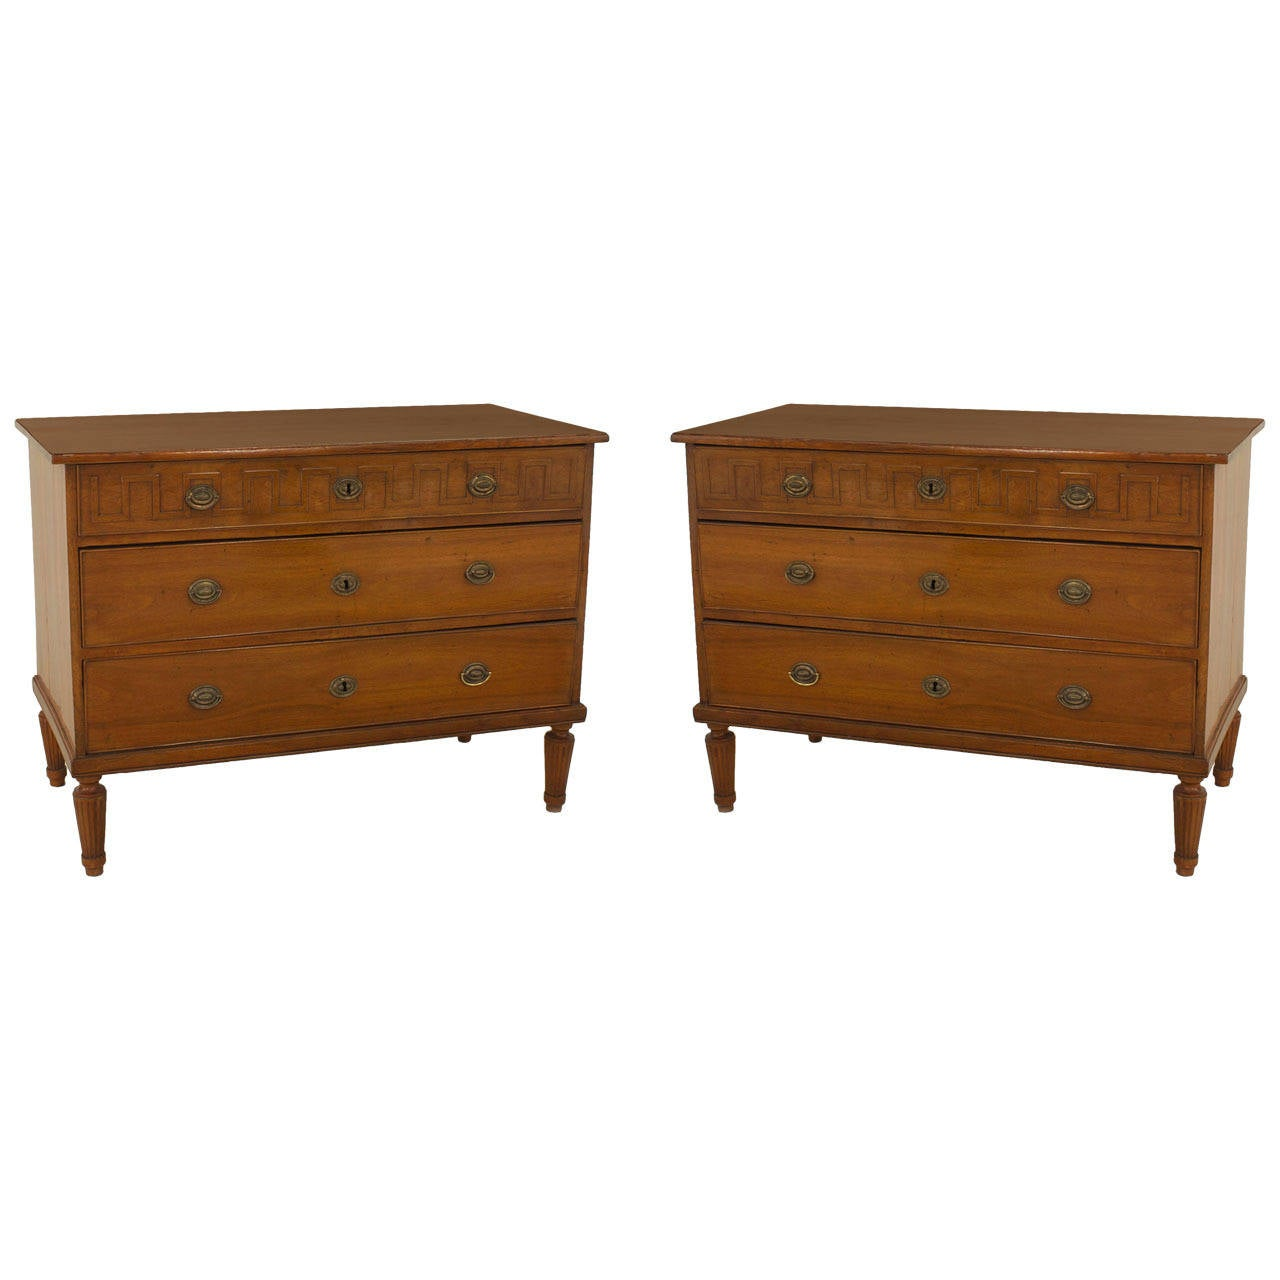 Pair of 19th Century Italian Neoclassical Fruitwood Three-Drawer Chests